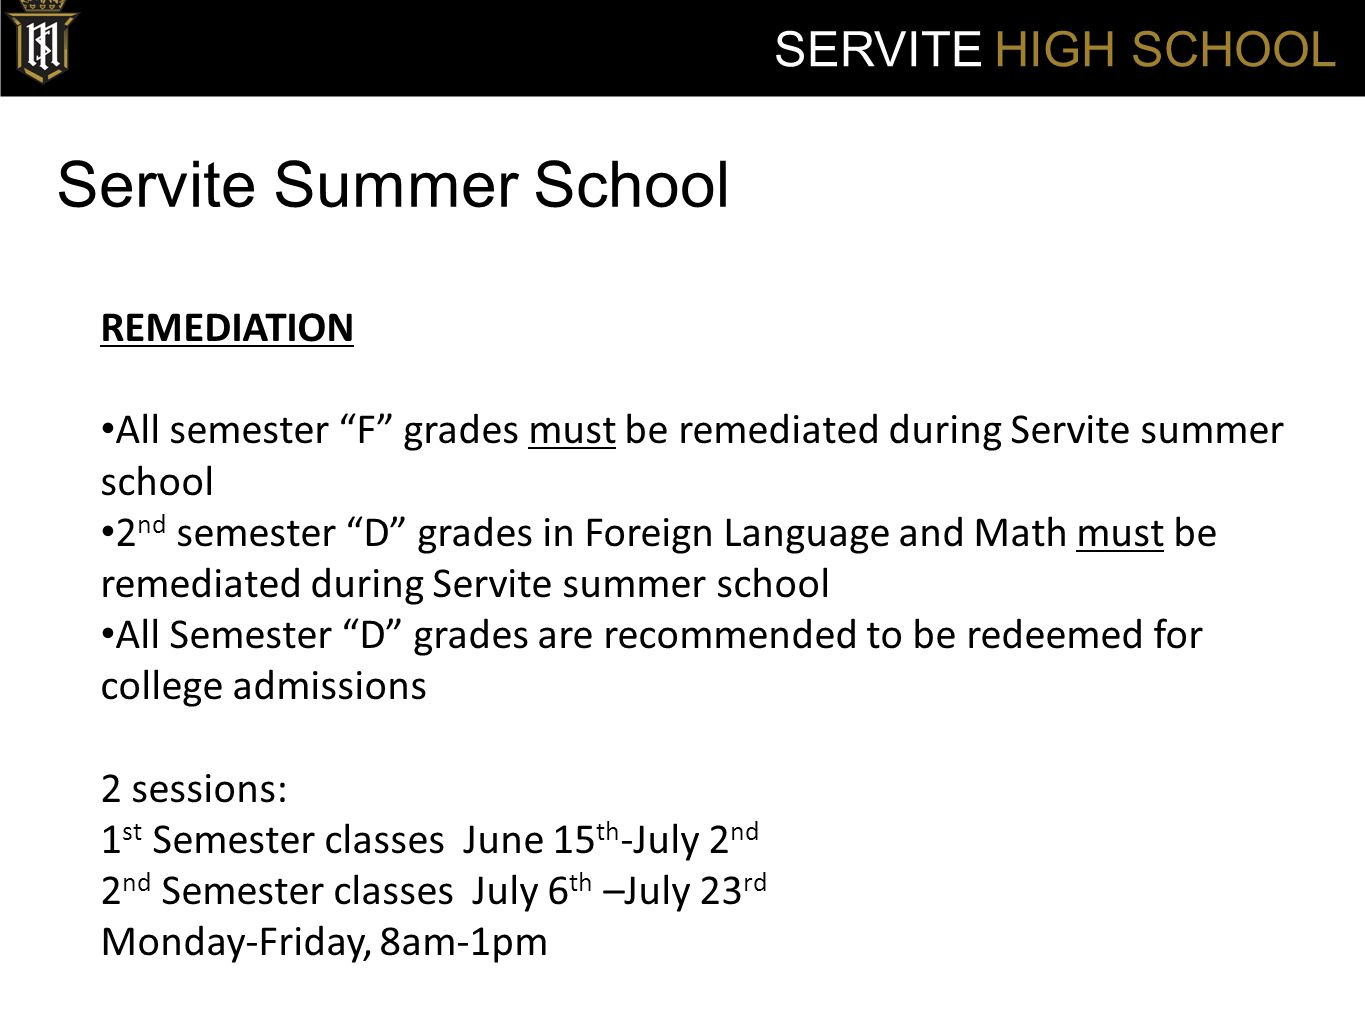 Servite Summer School SERVITE HIGH SCHOOL REMEDIATION All semester F grades must be remediated during Servite summer school 2 nd semester D grades in Foreign Language and Math must be remediated during Servite summer school All Semester D grades are recommended to be redeemed for college admissions 2 sessions: 1 st Semester classes June 15 th -July 2 nd 2 nd Semester classes July 6 th –July 23 rd Monday-Friday, 8am-1pm